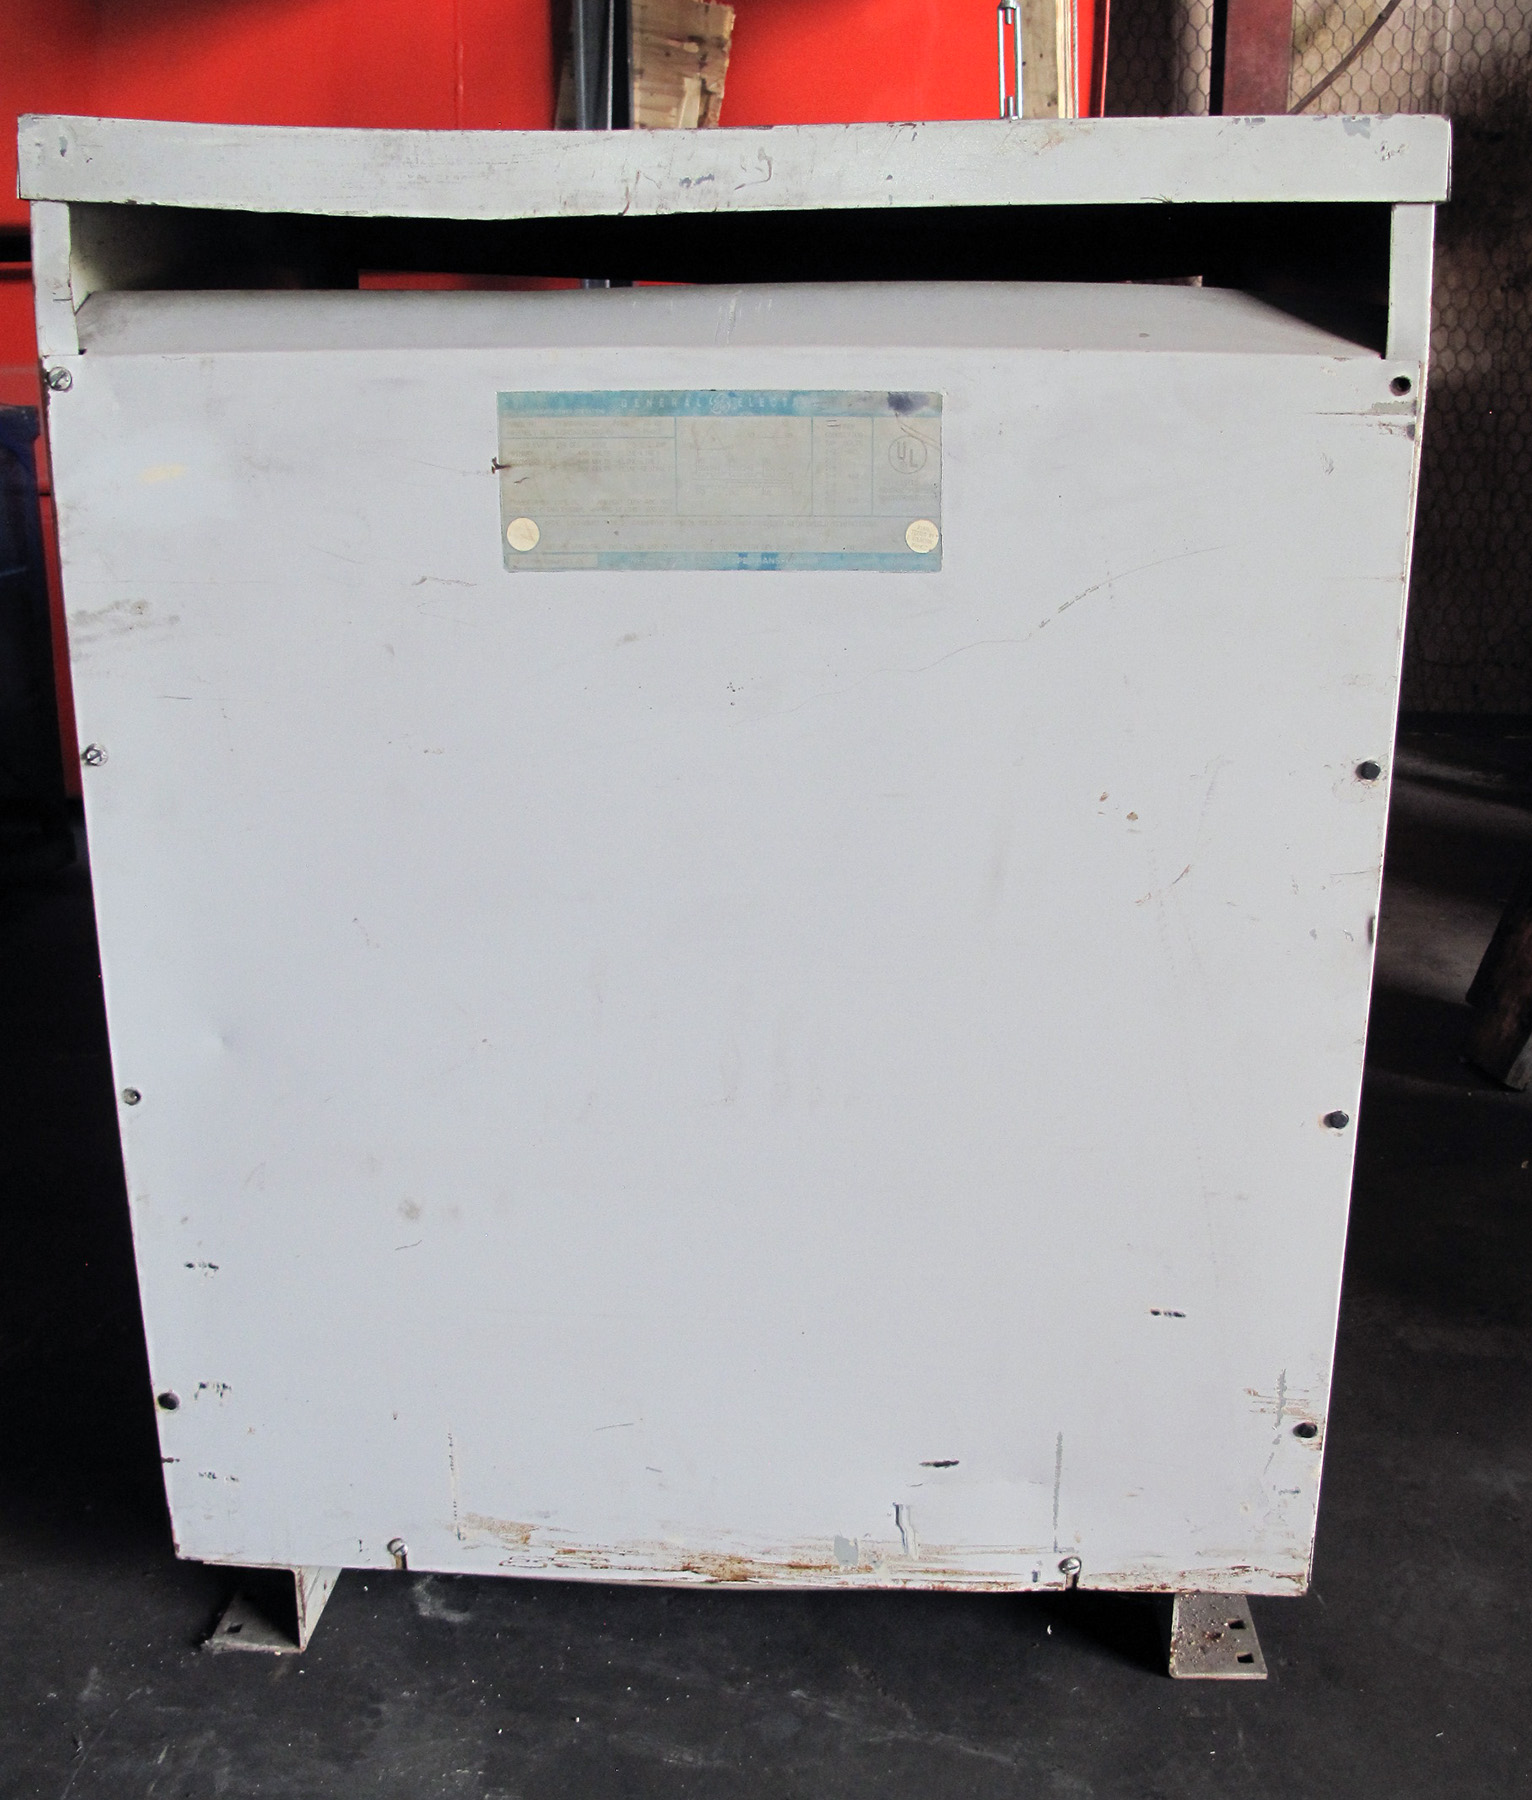 PRE-OWNED, 118 KVA GE MODEL 9T23B4009G22 TRANSFORMER, PRIMARY 460V, SECONDARY 460/260, MULTI TAP